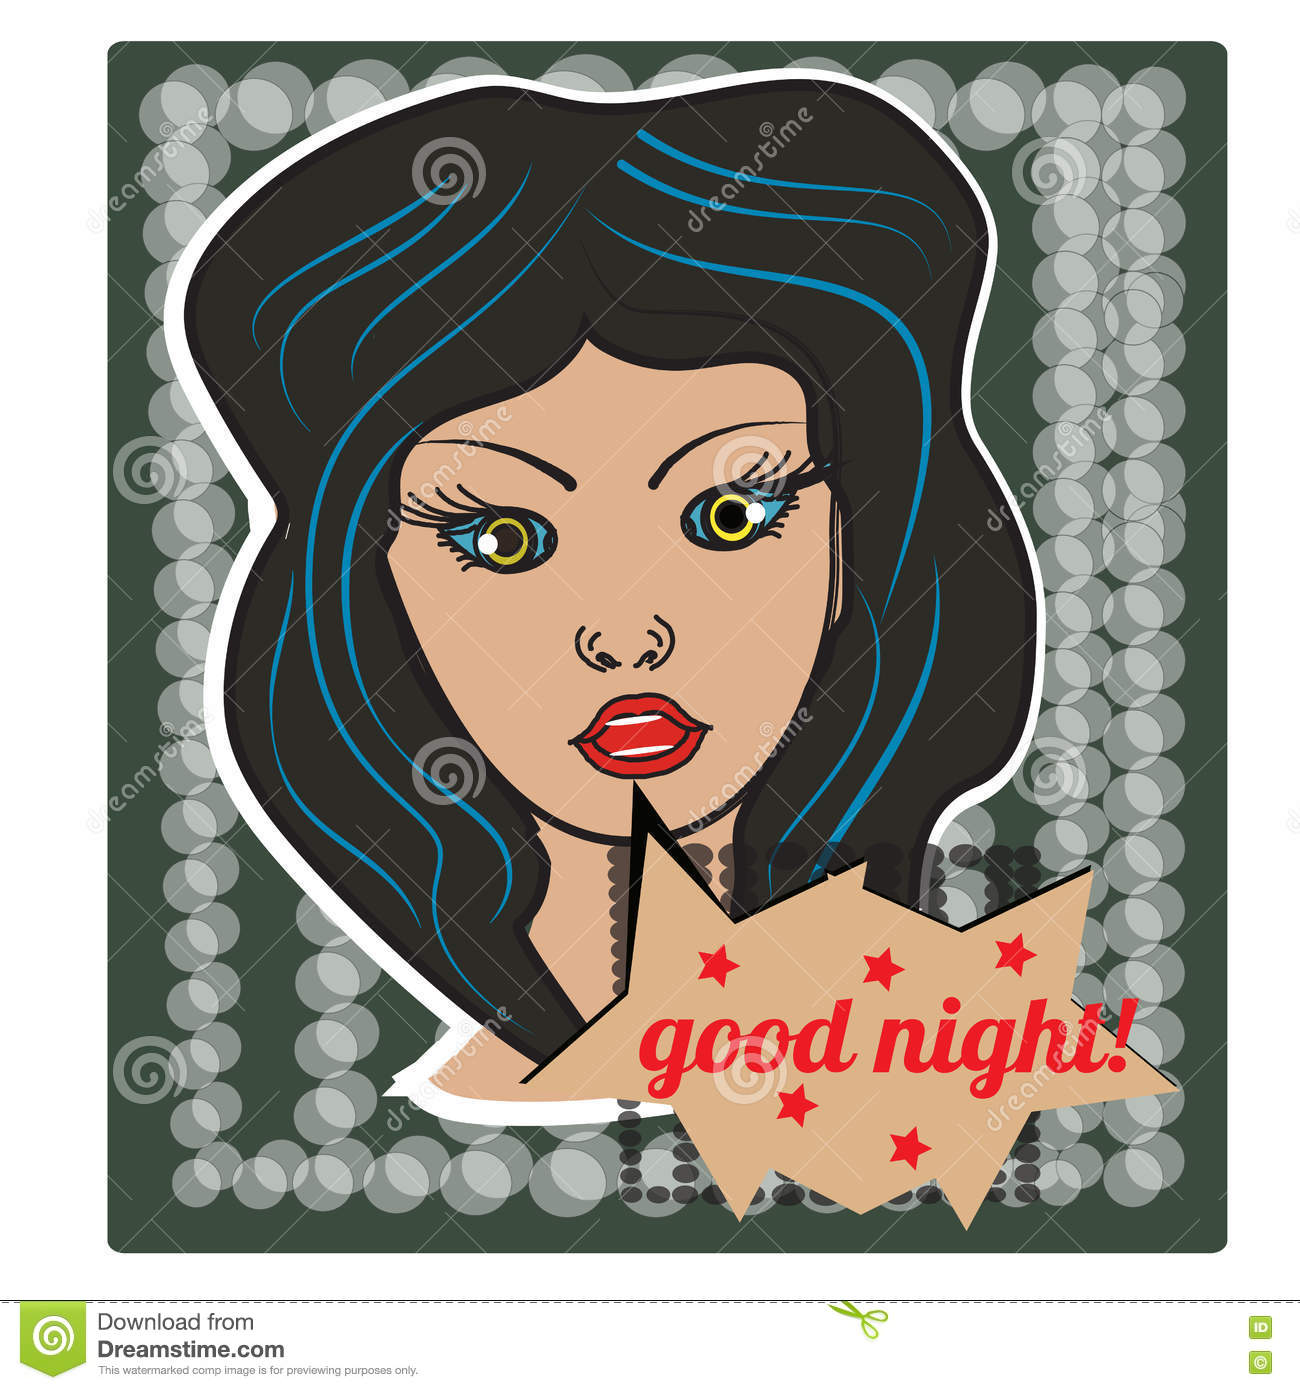 Pop art style girl on halftone background with happy good night bubble. Sticker figure, poster. Vector